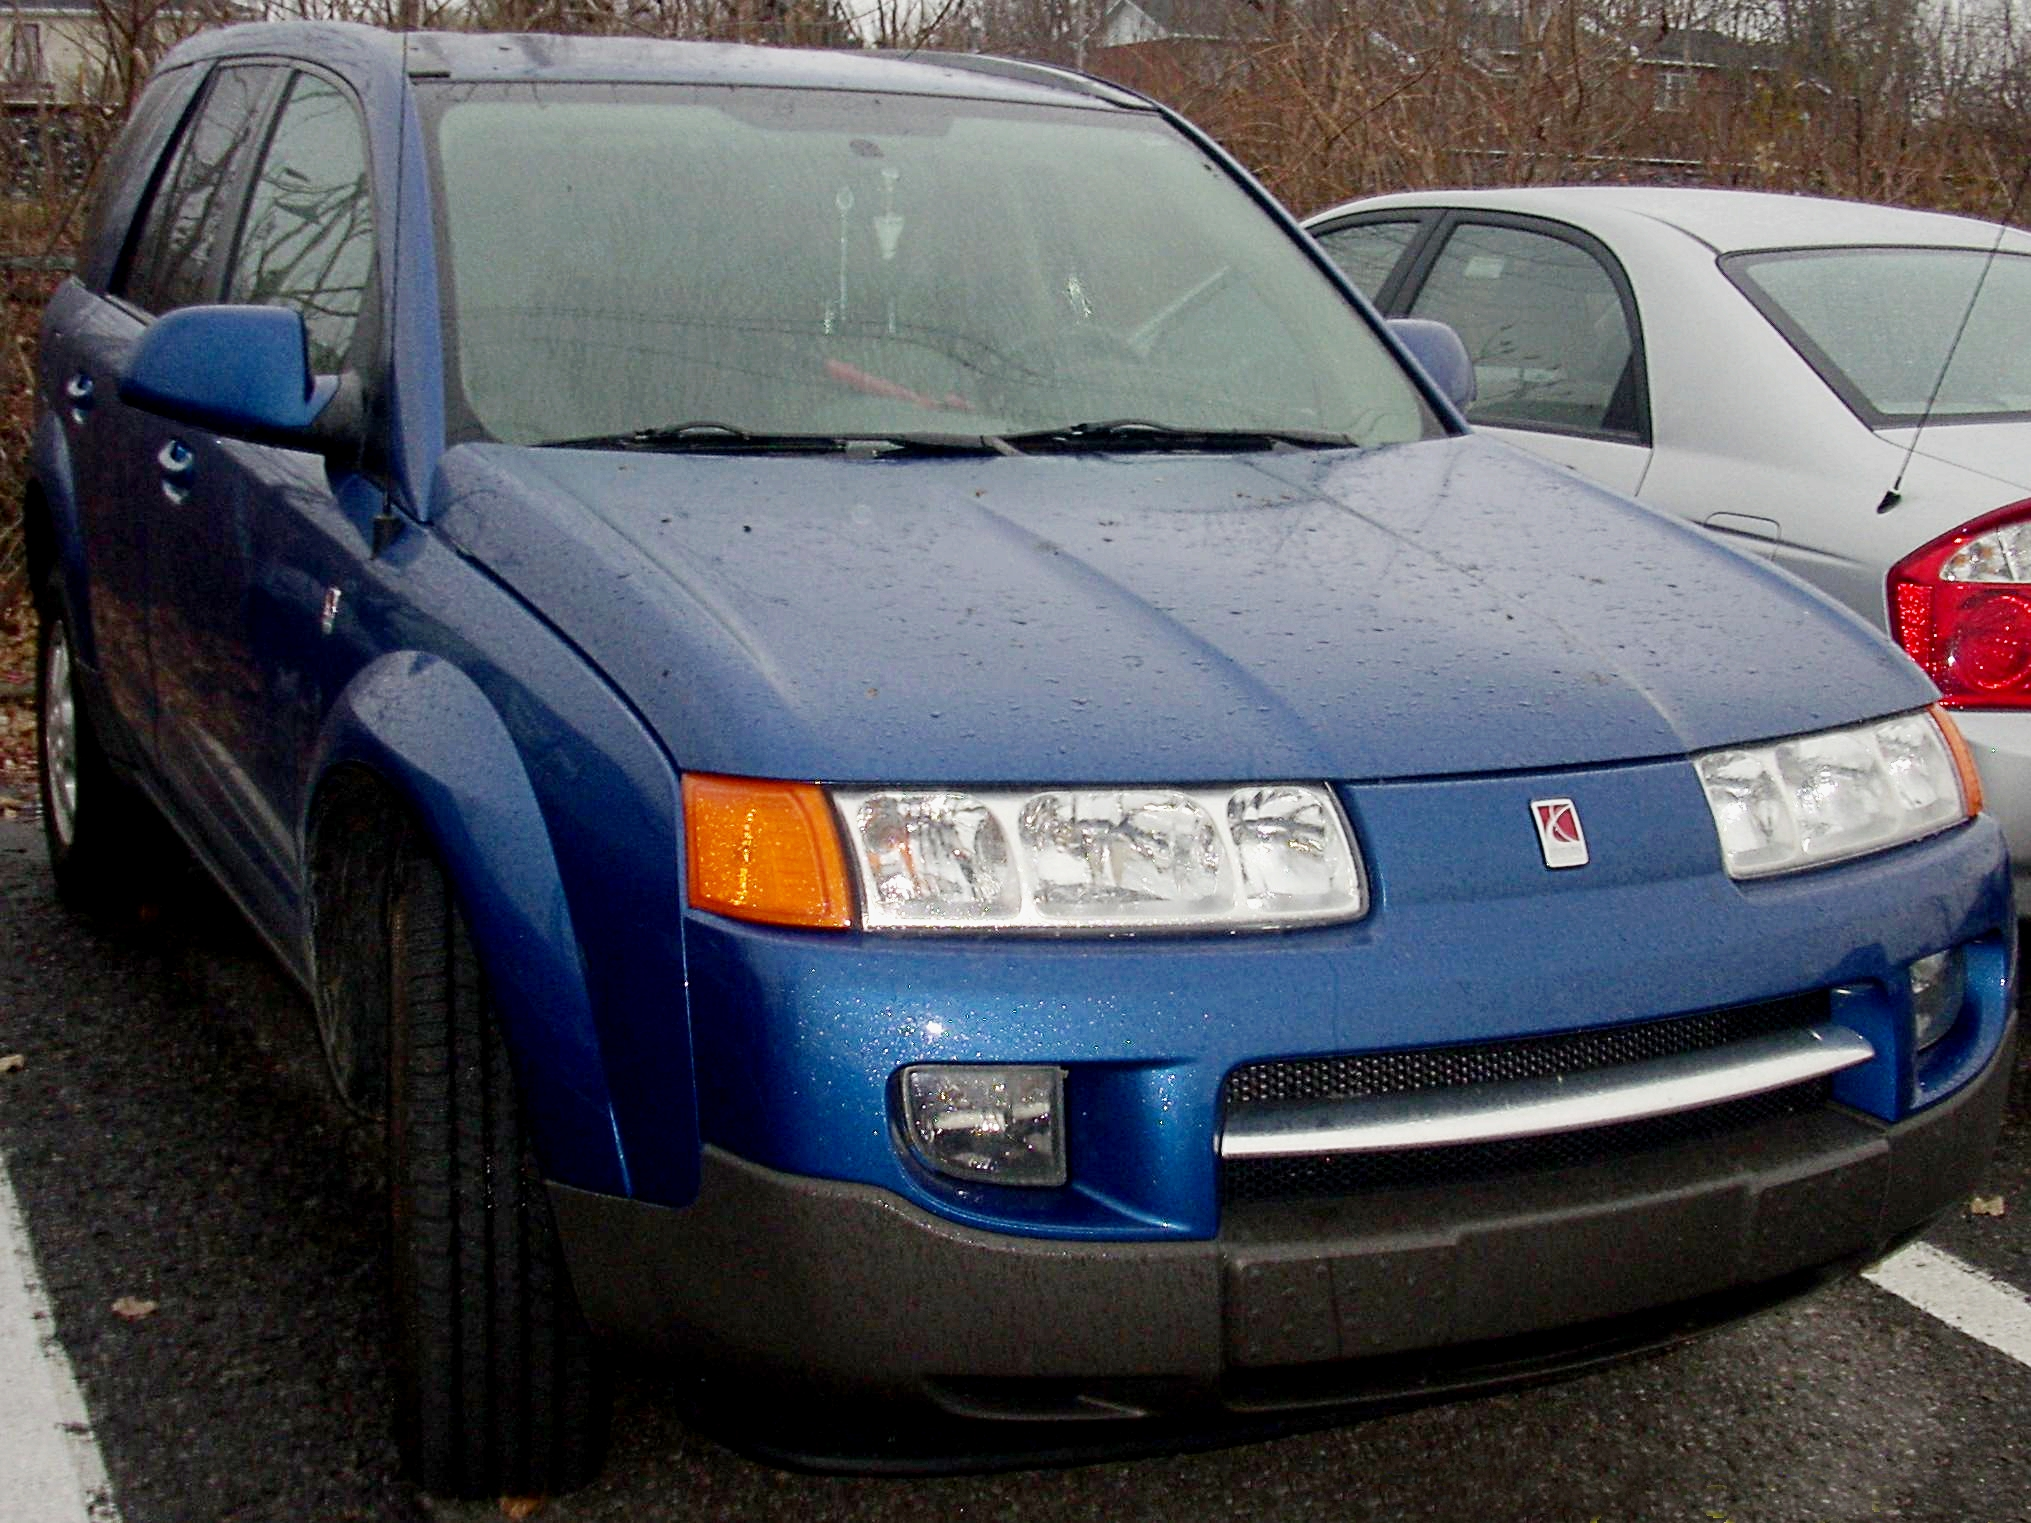 2002 saturn vue blue 200 interior and exterior images. Black Bedroom Furniture Sets. Home Design Ideas